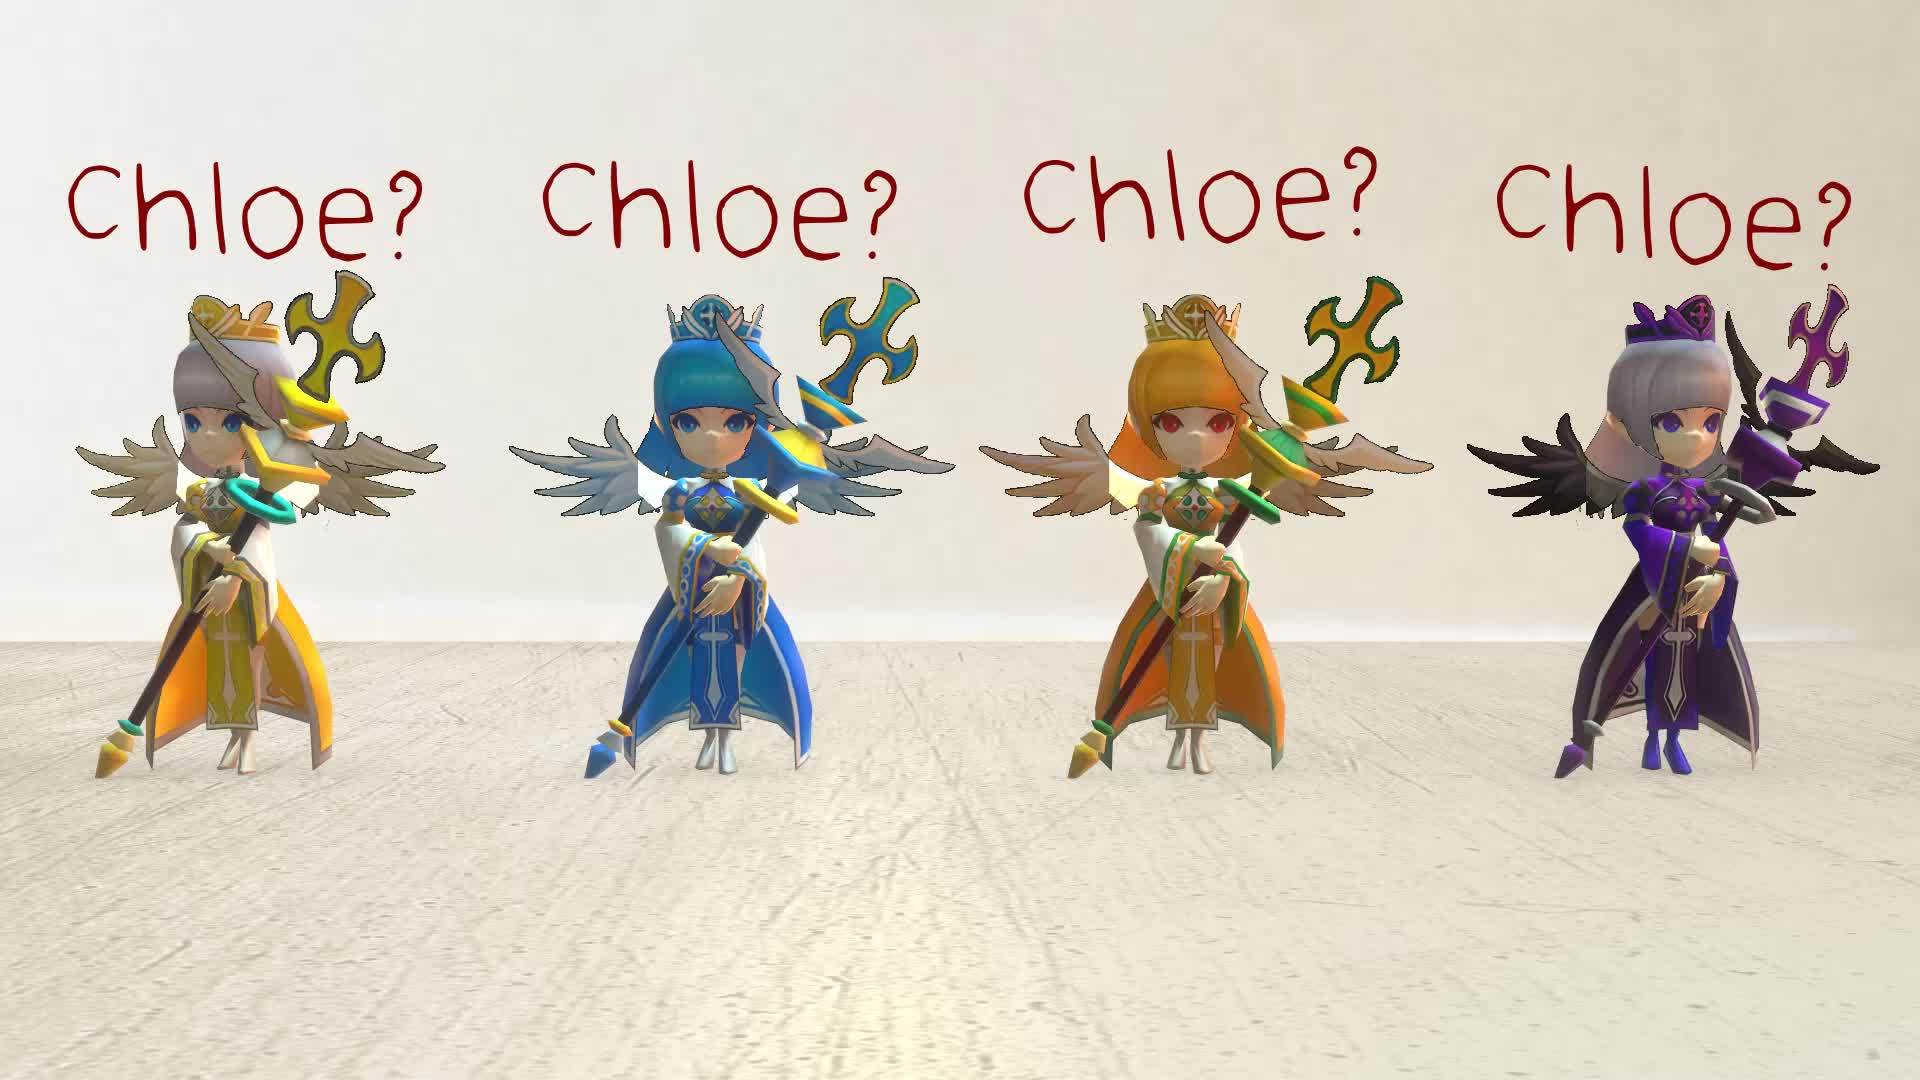 summonerswar, Have you seen our Sister, Chloe? [Summoners War 3D Render] GIFs